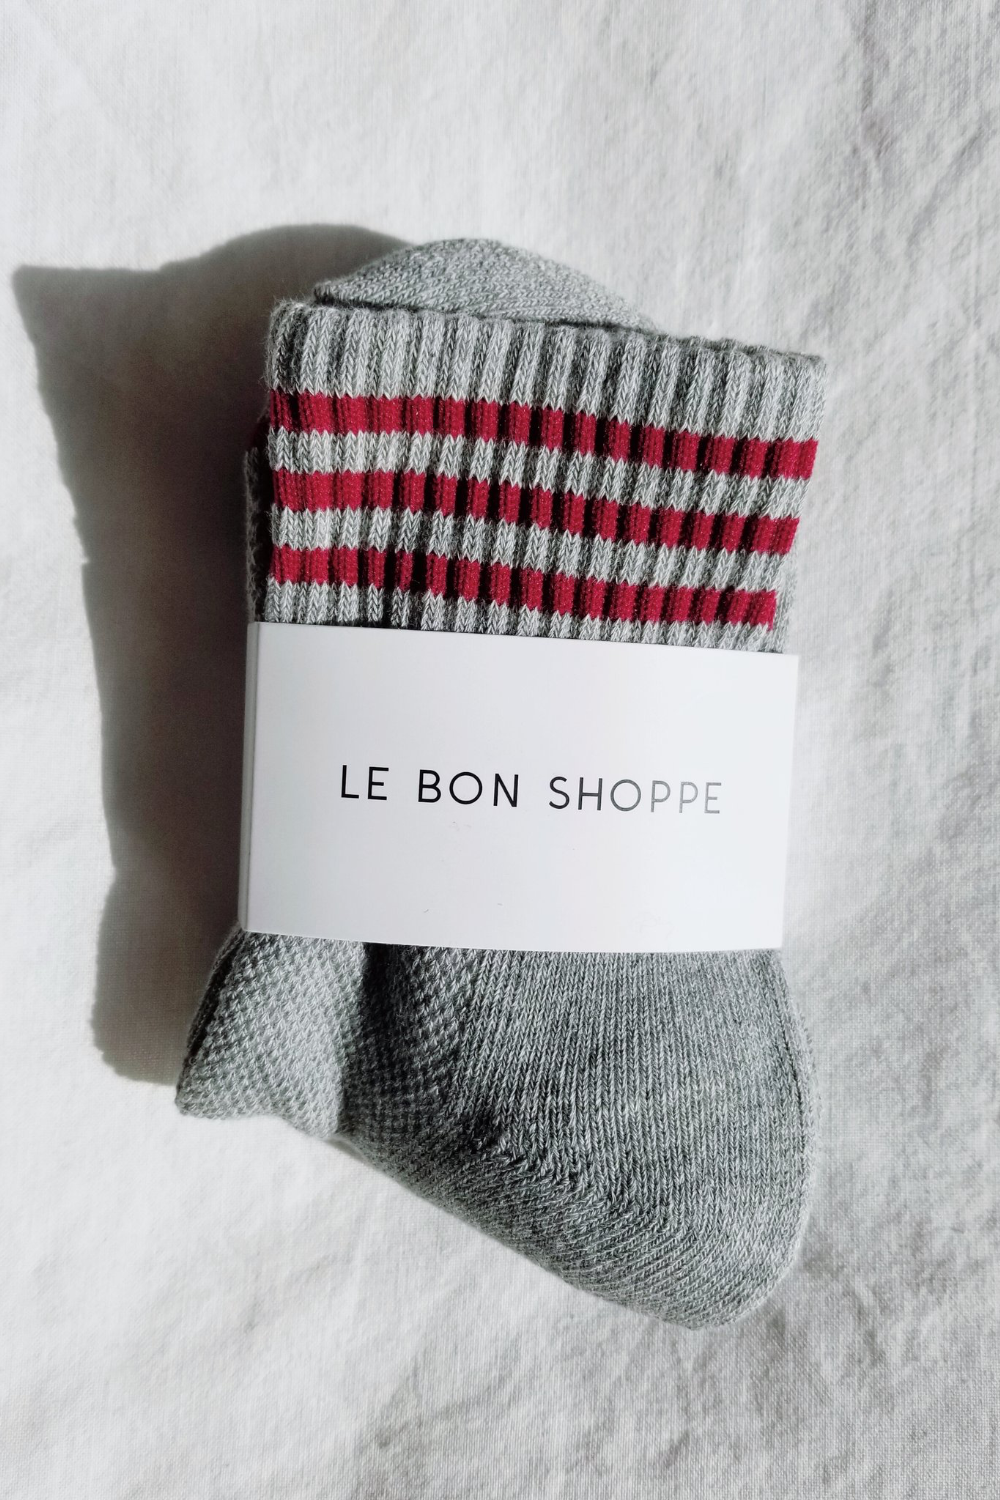 Le Bon Shoppe Girlfriend Socks in Heather Grey